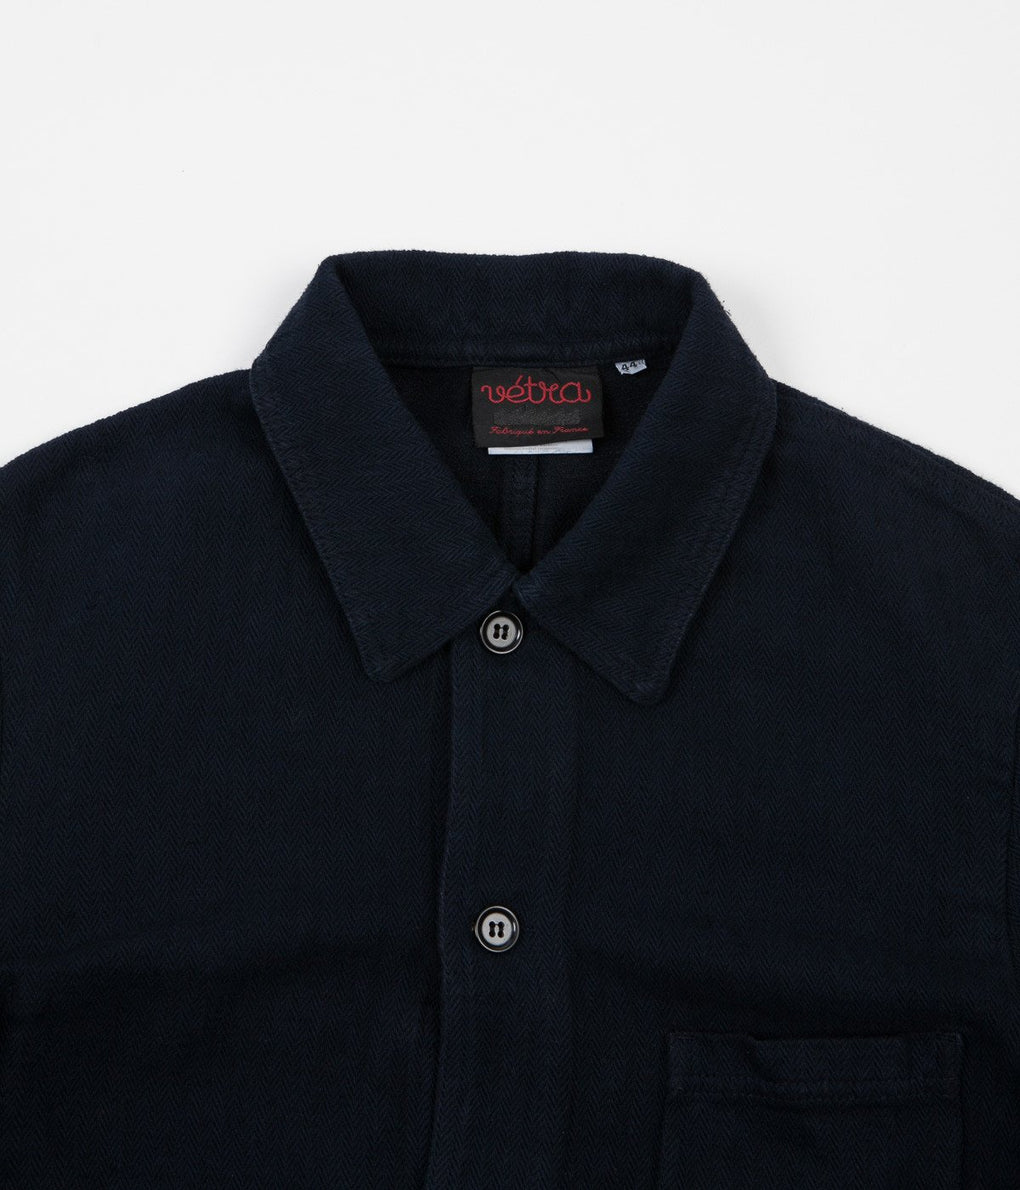 Vetra No.4 Workwear Jacket - Navy